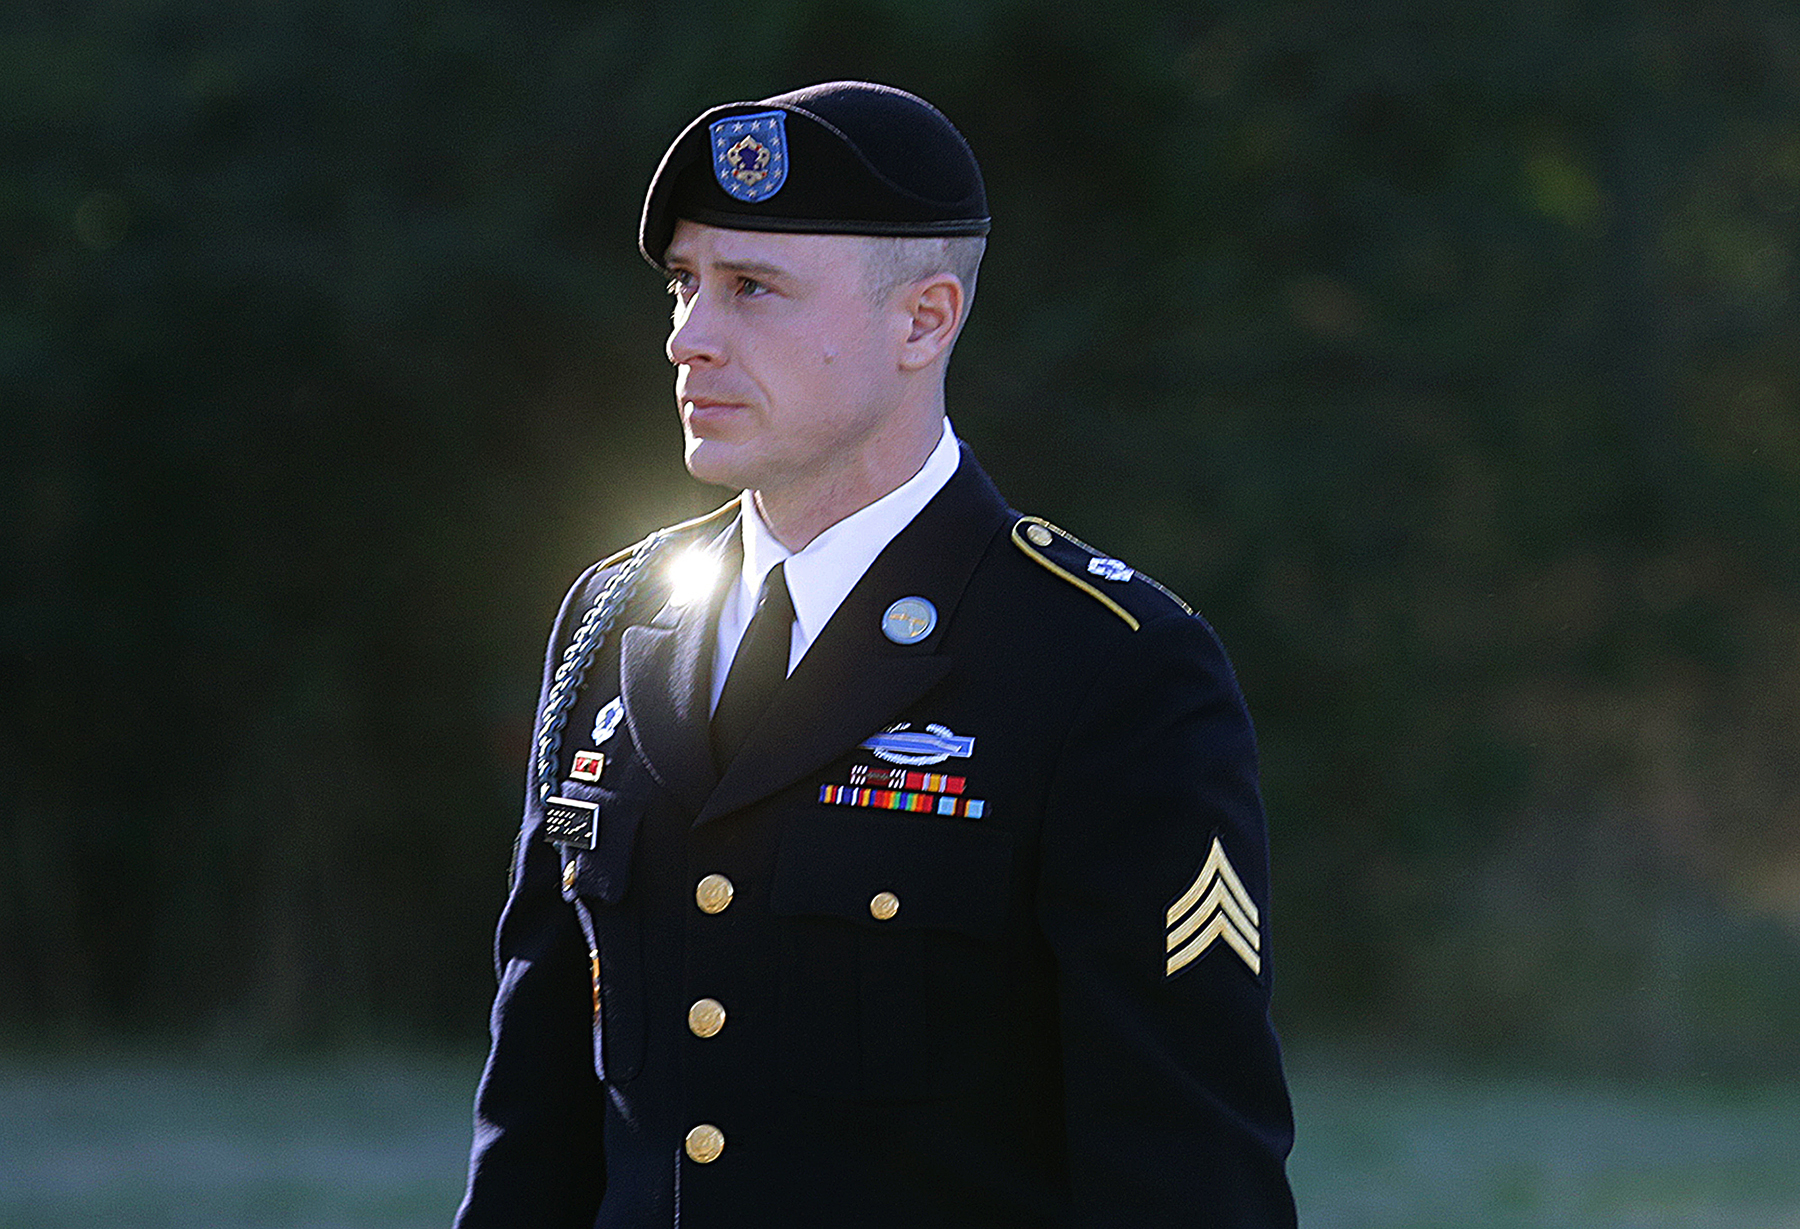 Bergdahl pleads guilty to desertion, misbehavior